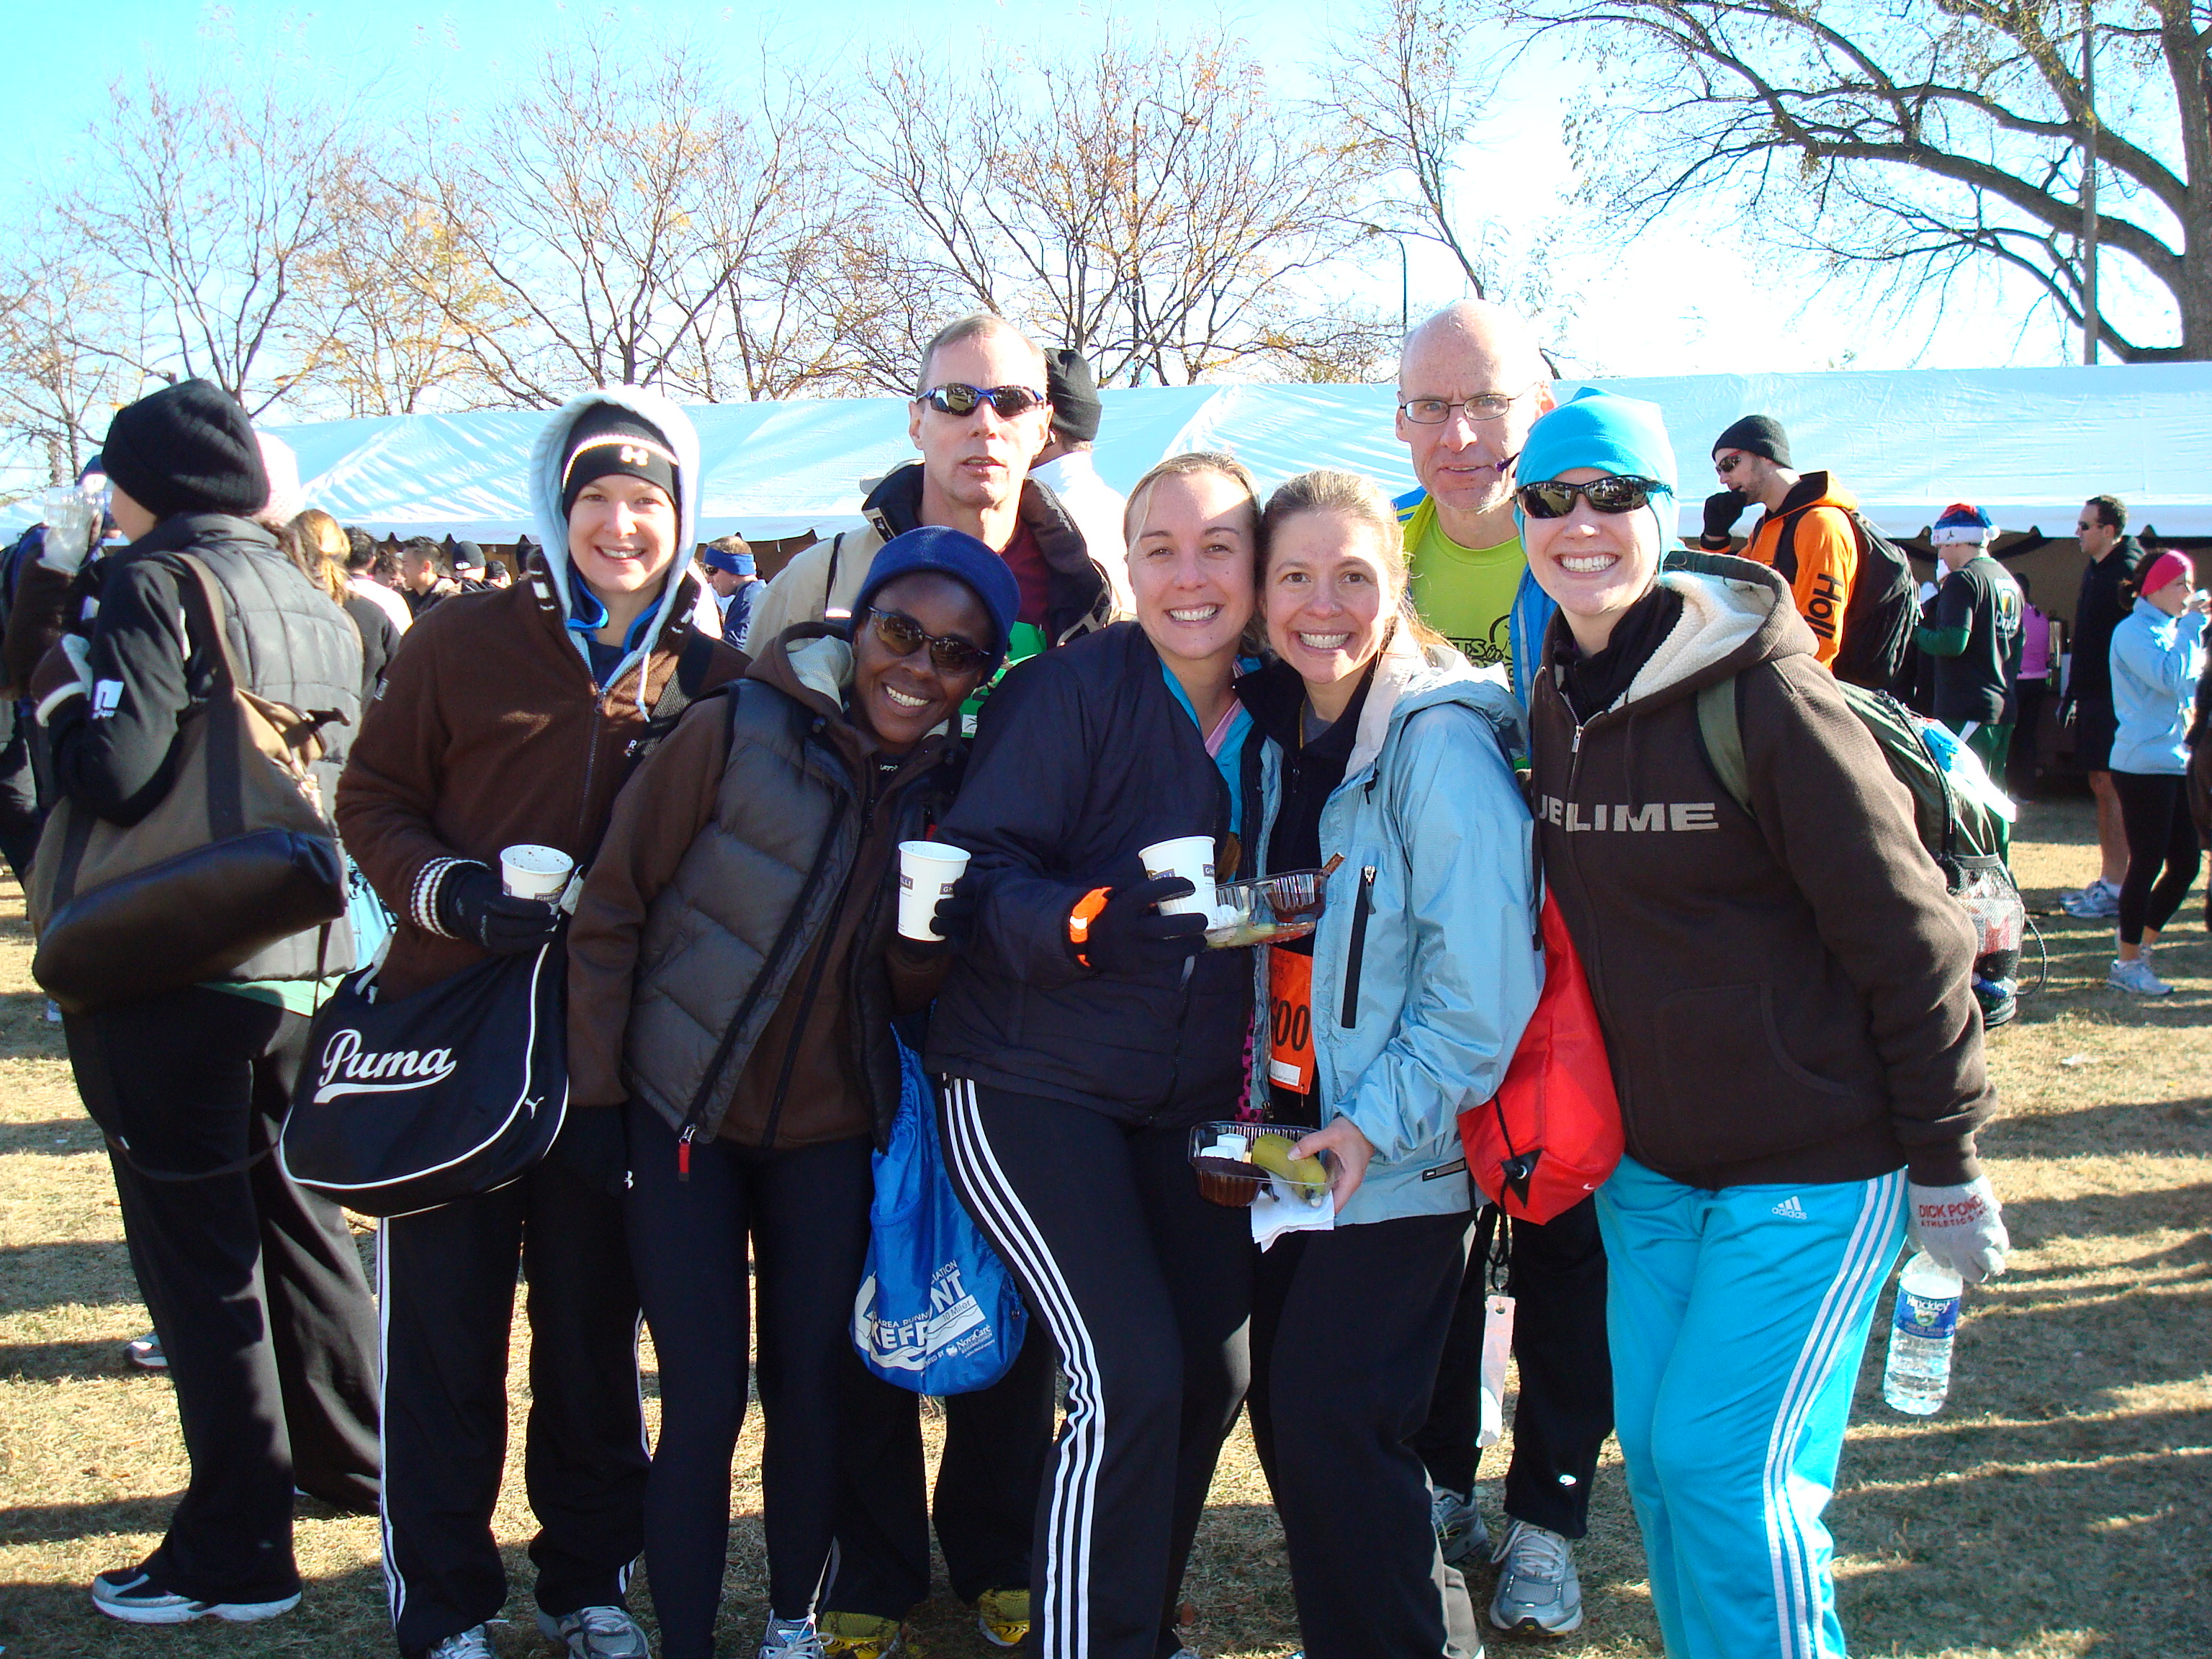 Hot Chocolate Chicago 5k - Pumpkin Chocolate Chip Cookies